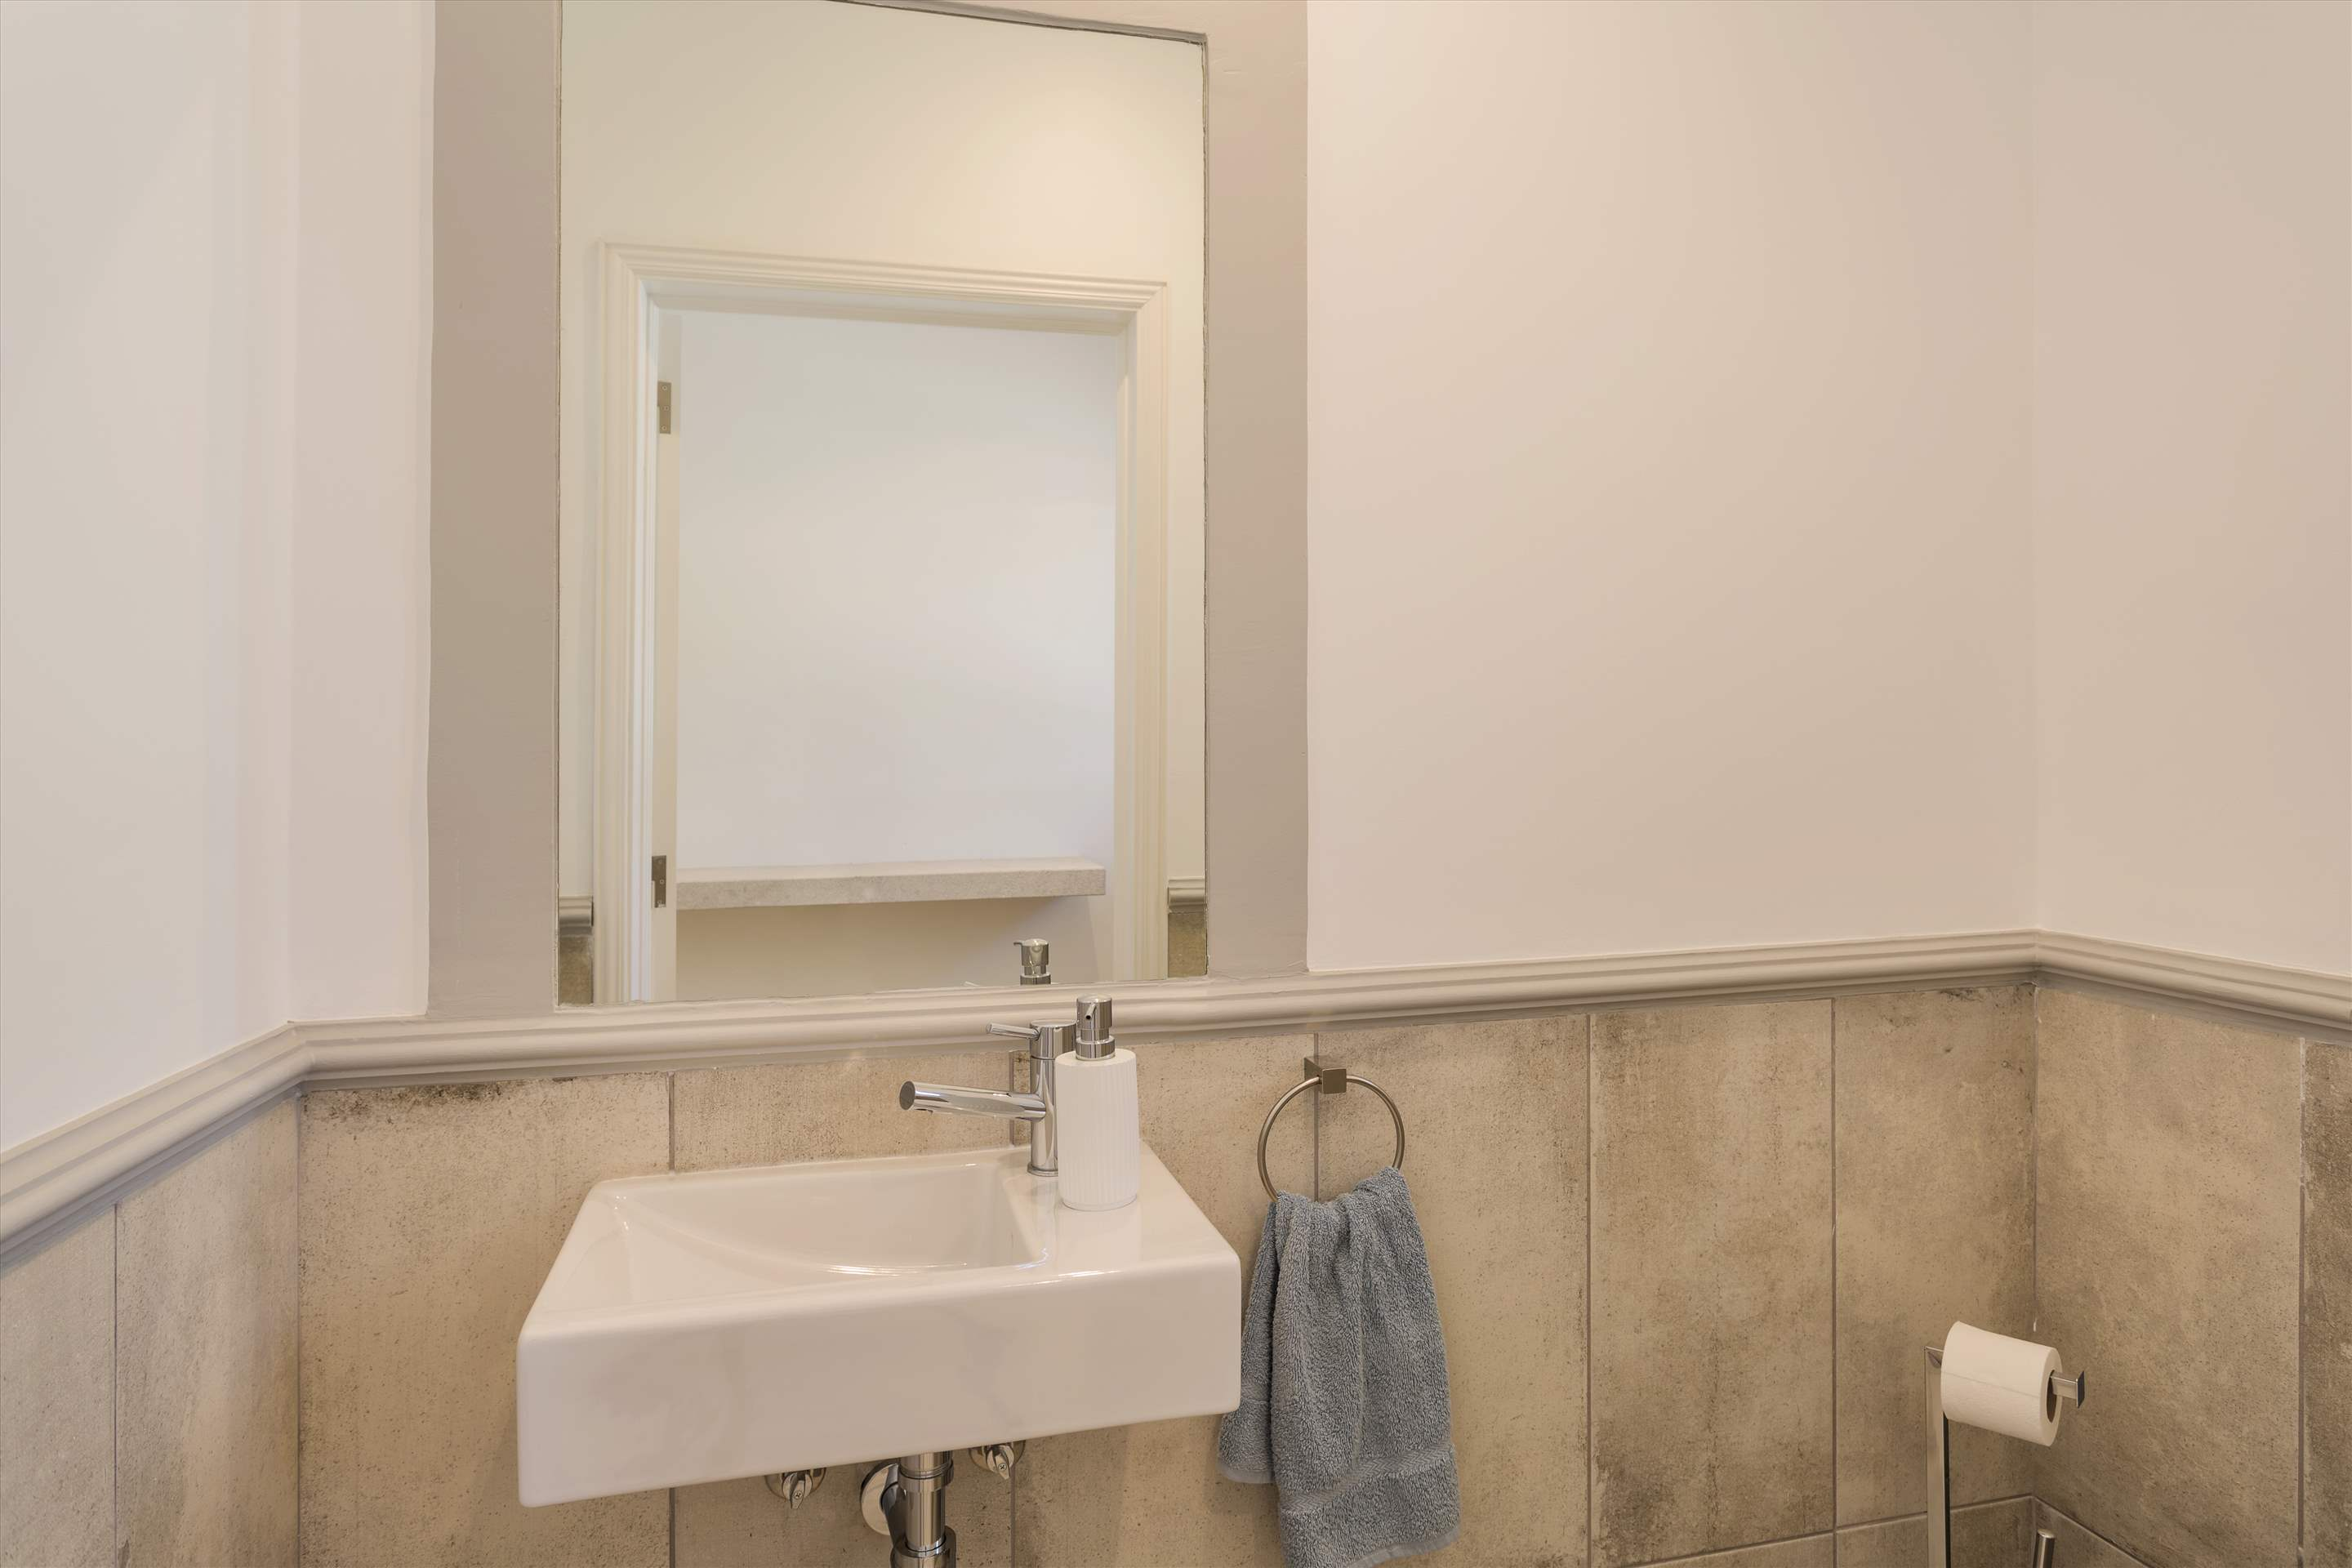 Townhouse Jessica, 3 bedroom villa in Quinta do Lago, Algarve Photo #16